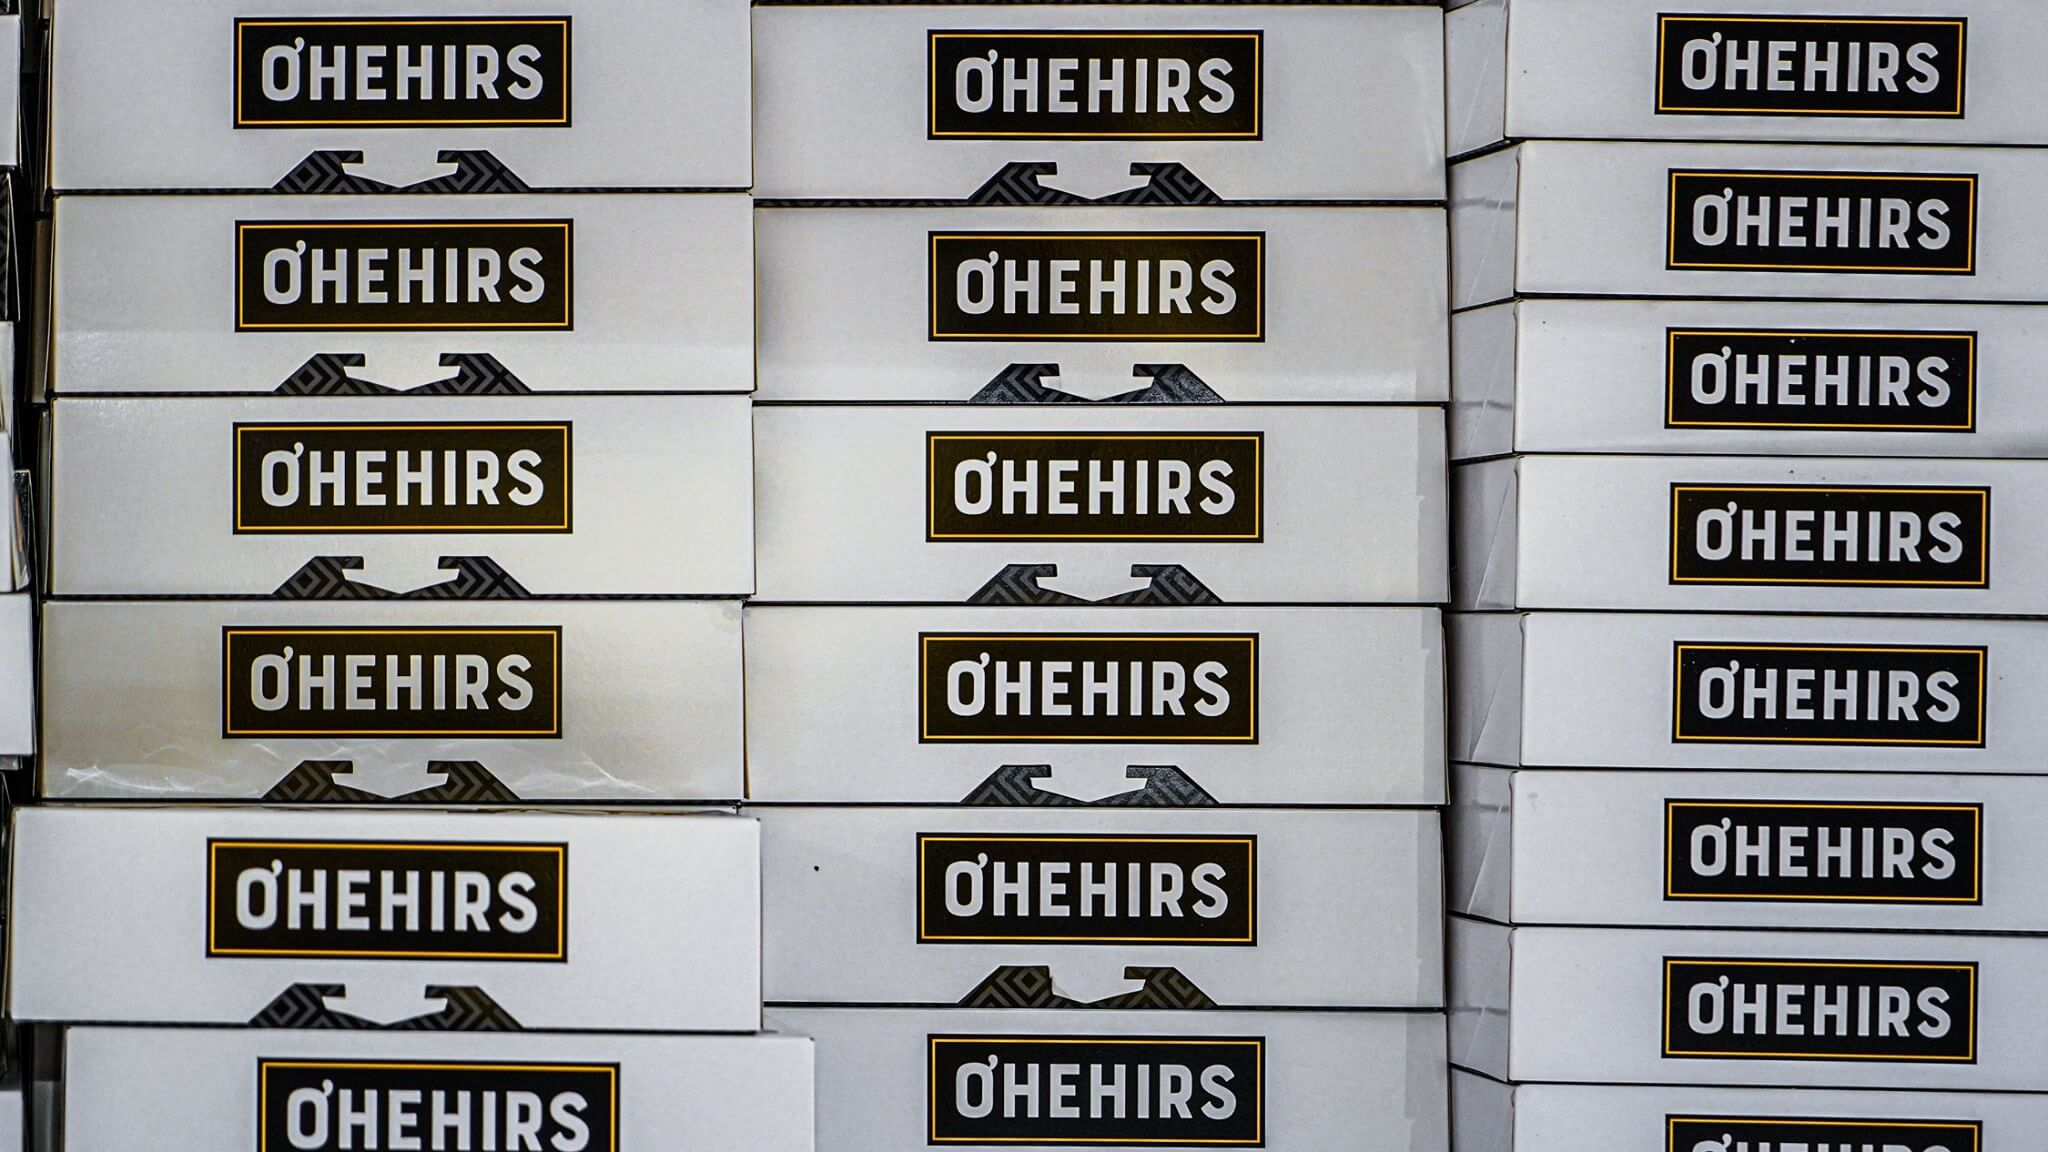 Pastry Boxes Reading 'O'Hehir's'